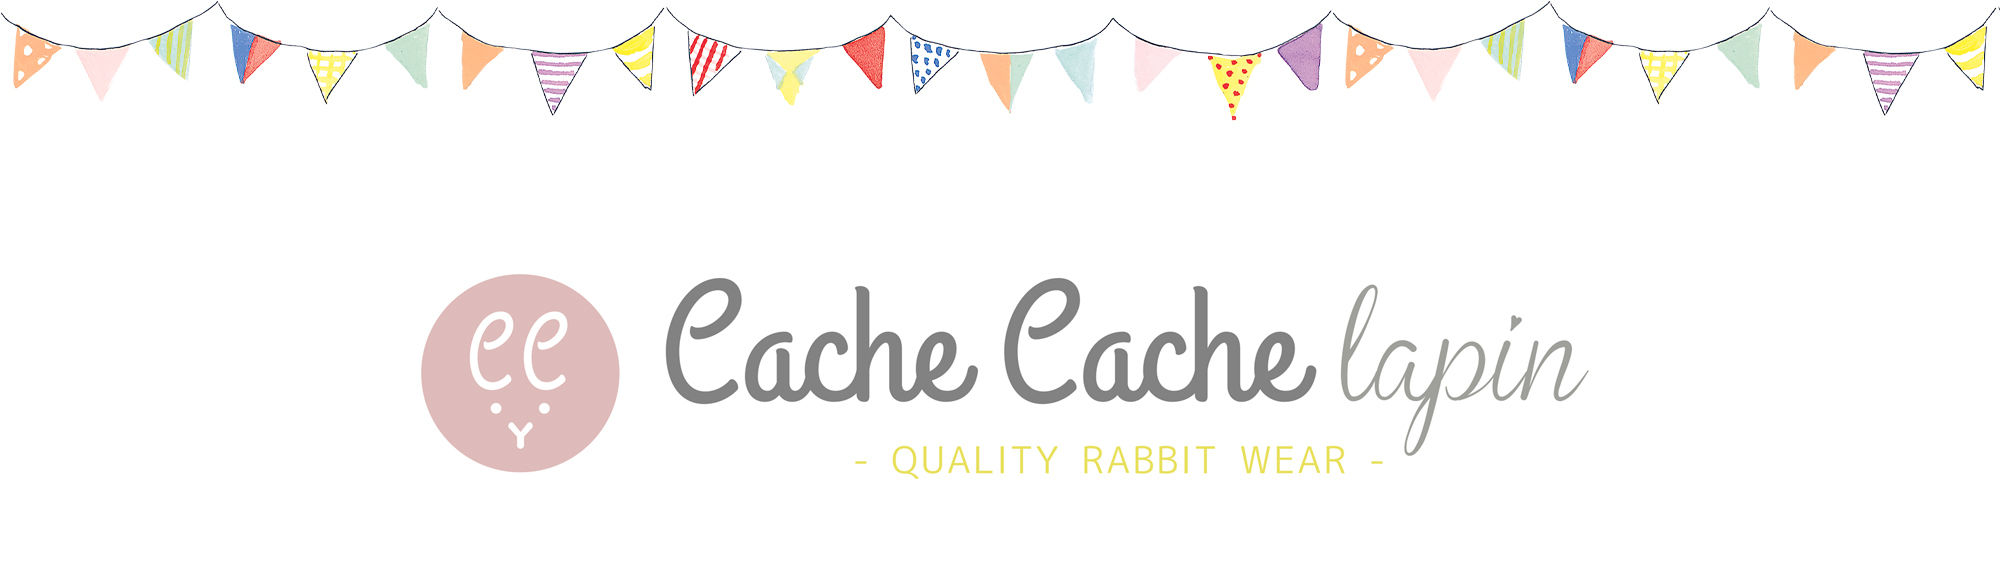 「CacheCache lapin -Quality Rabbit Wear-」